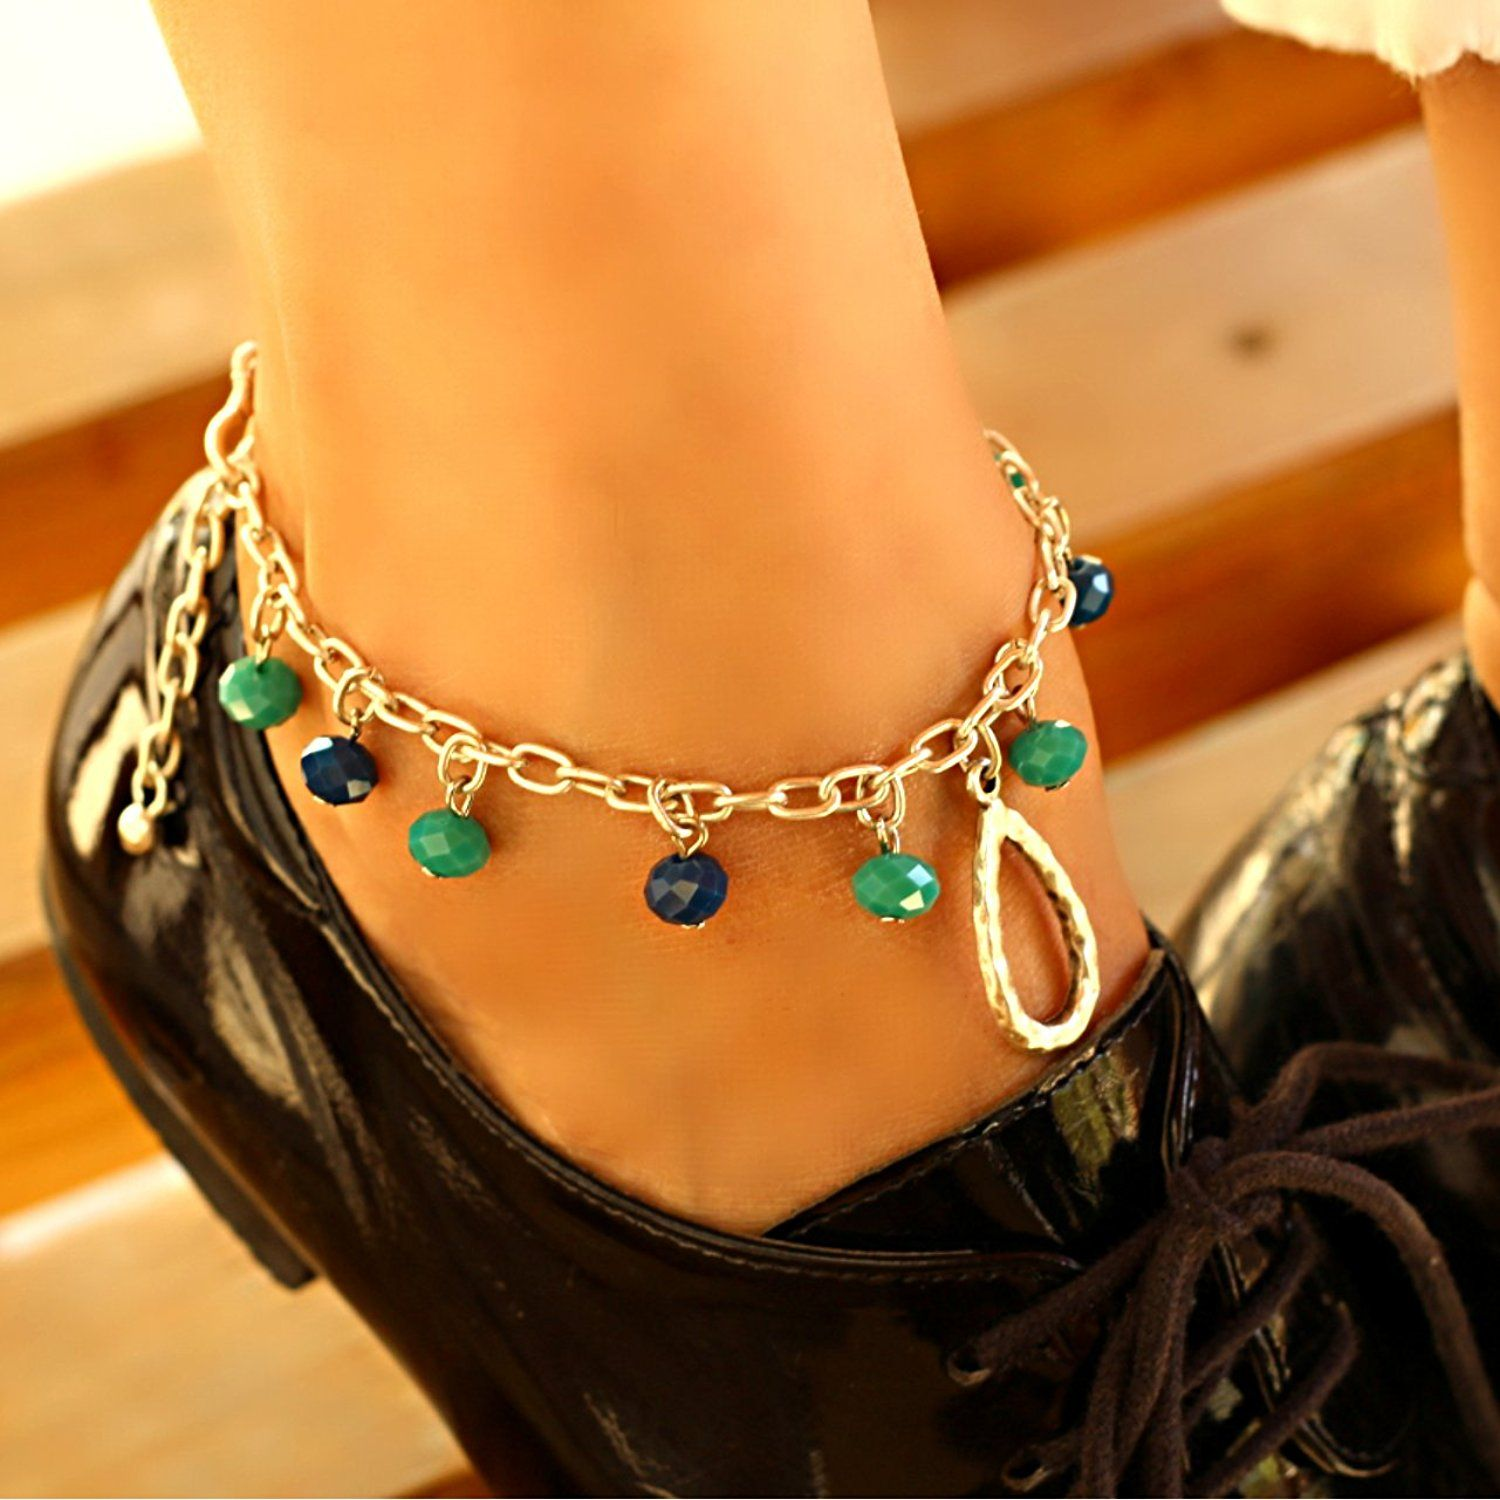 accessories chain woven charm shell girls decoration item beach from bracelets bracelet anklets foot adjustable anklet women on link ankle jewelry in for